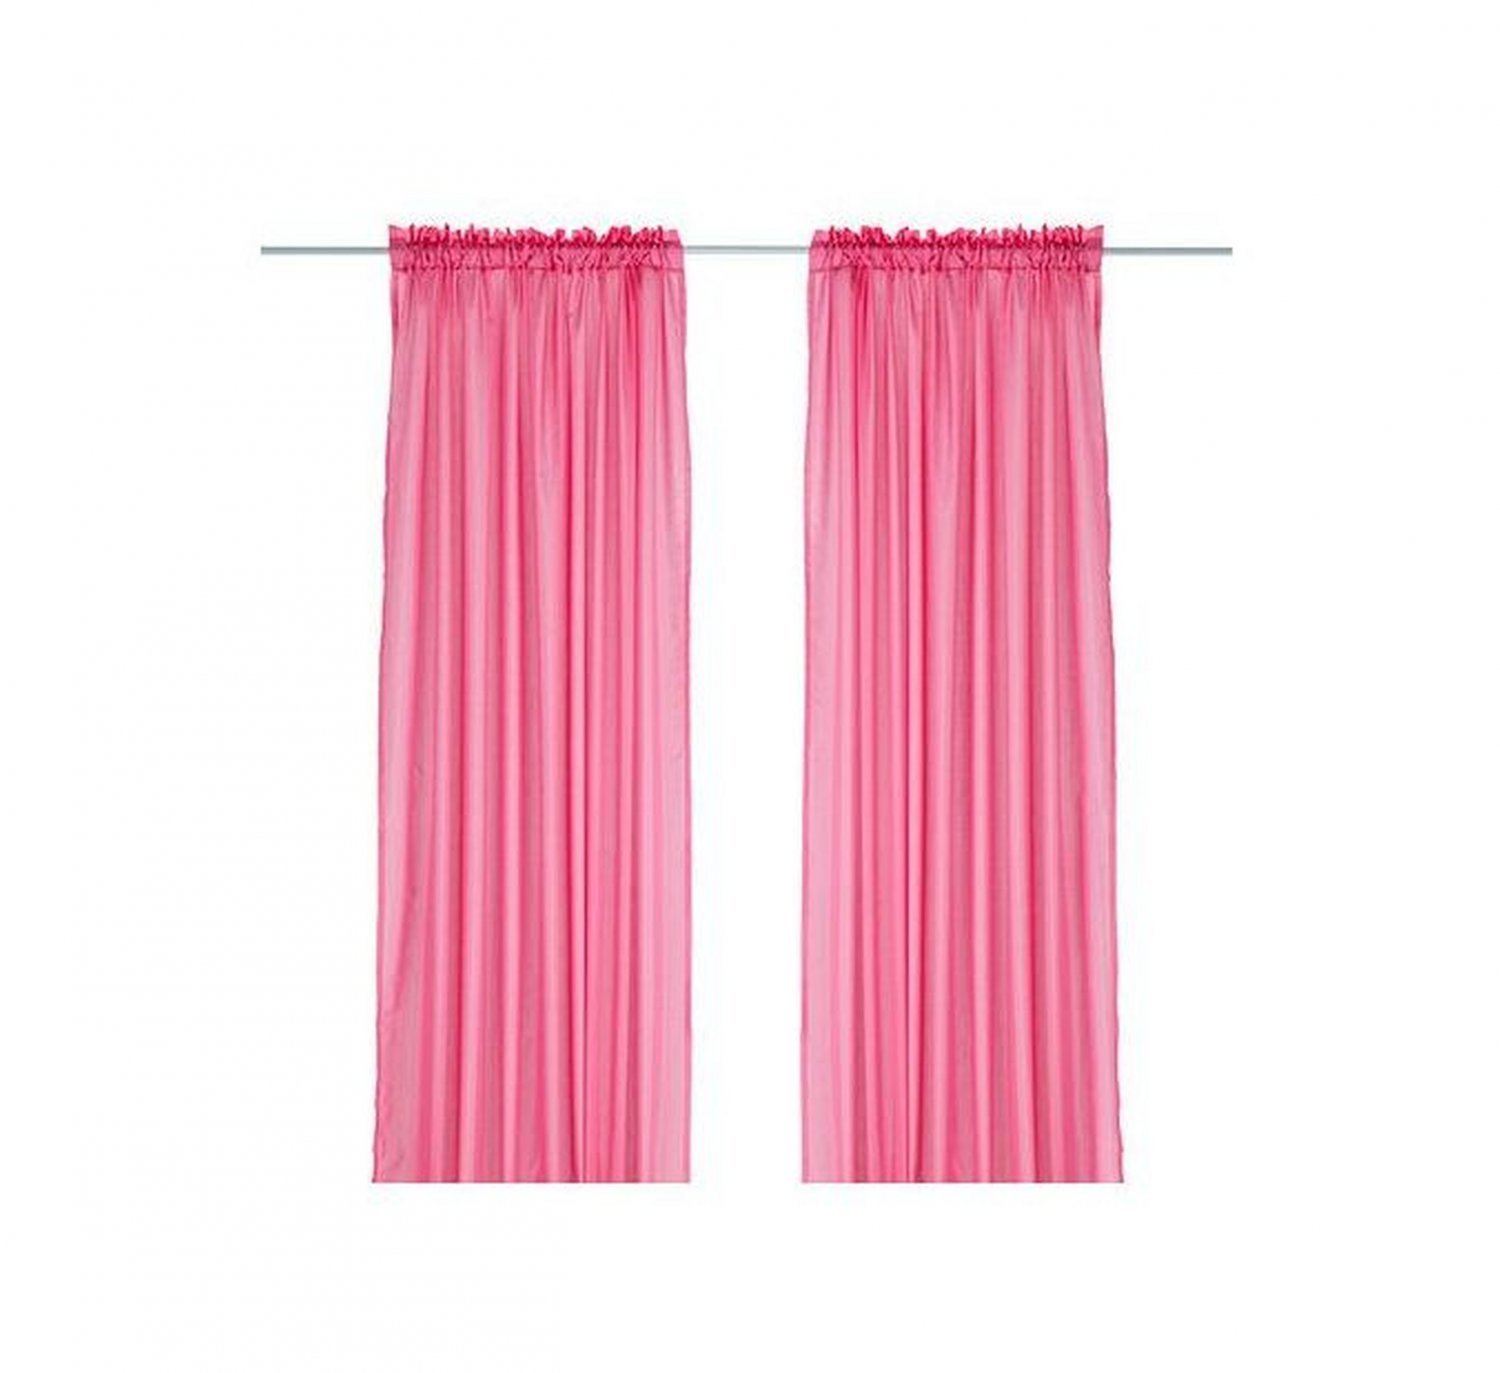 ikea vivan curtains drapes hot pink 2 panels cerise bright